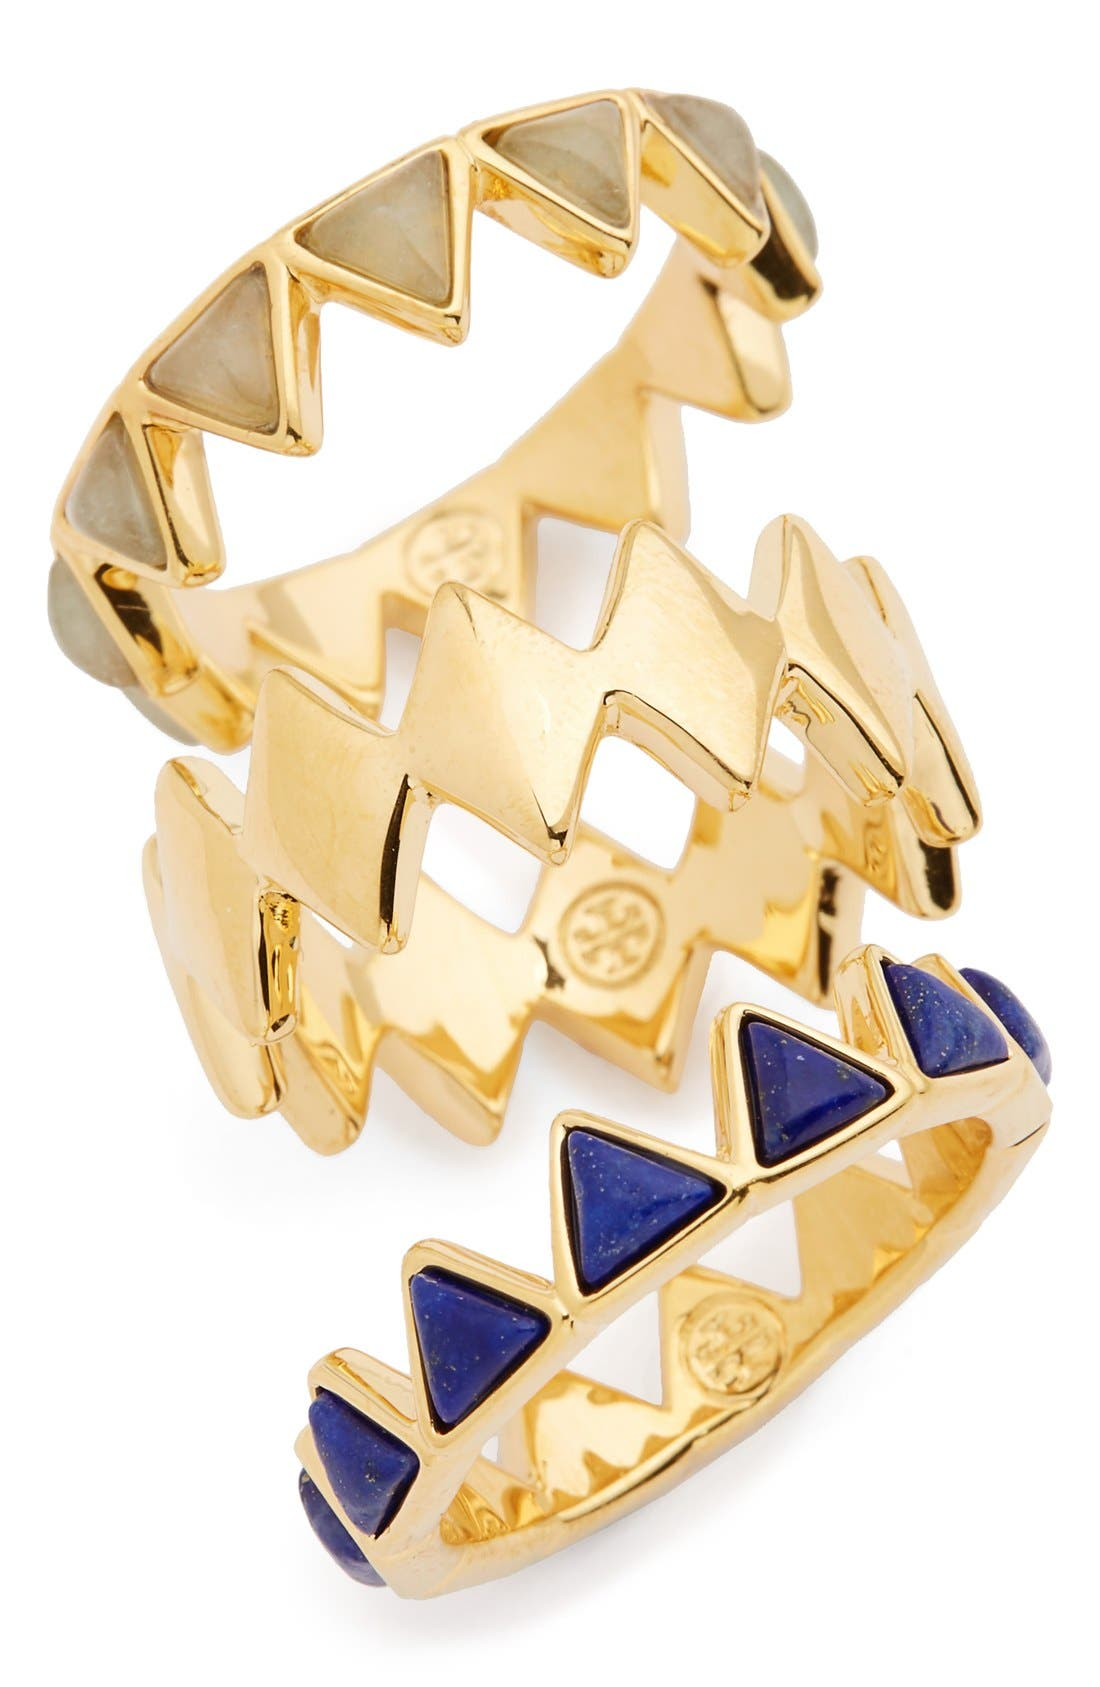 Main Image - Tory Burch 'Puzzle' Stone Rings (Set of 3)